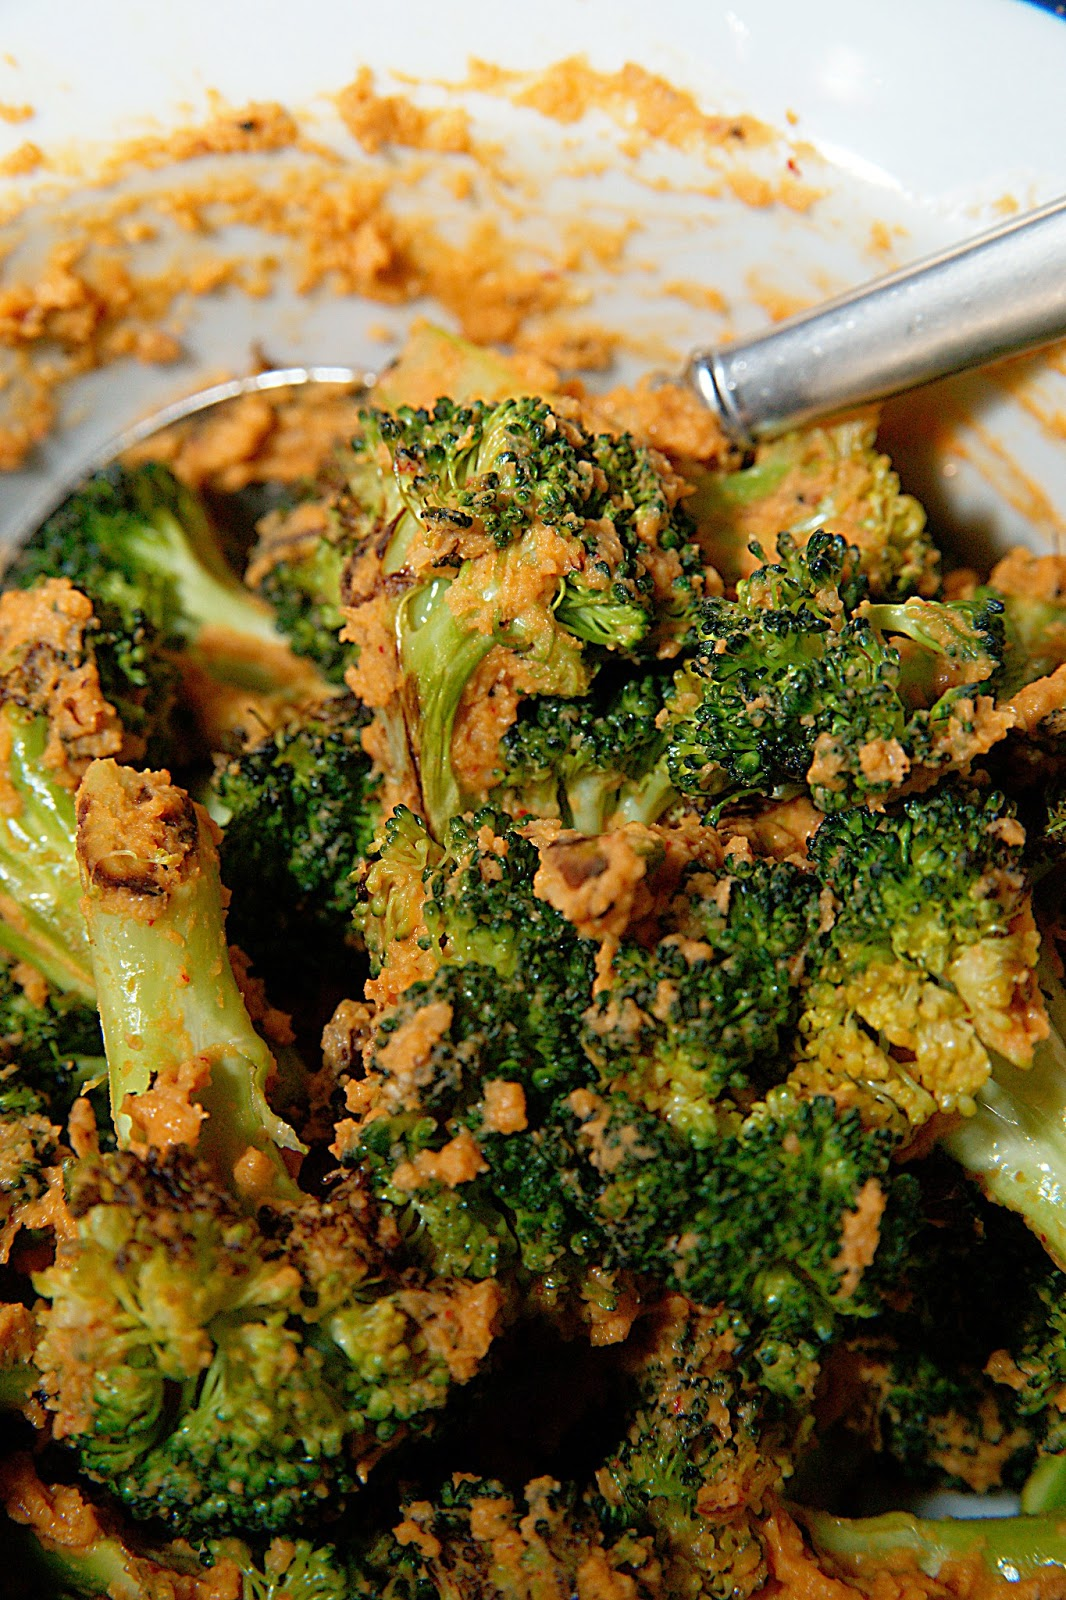 ... roasted broccoli roasting broccoli is so easy and it gives the